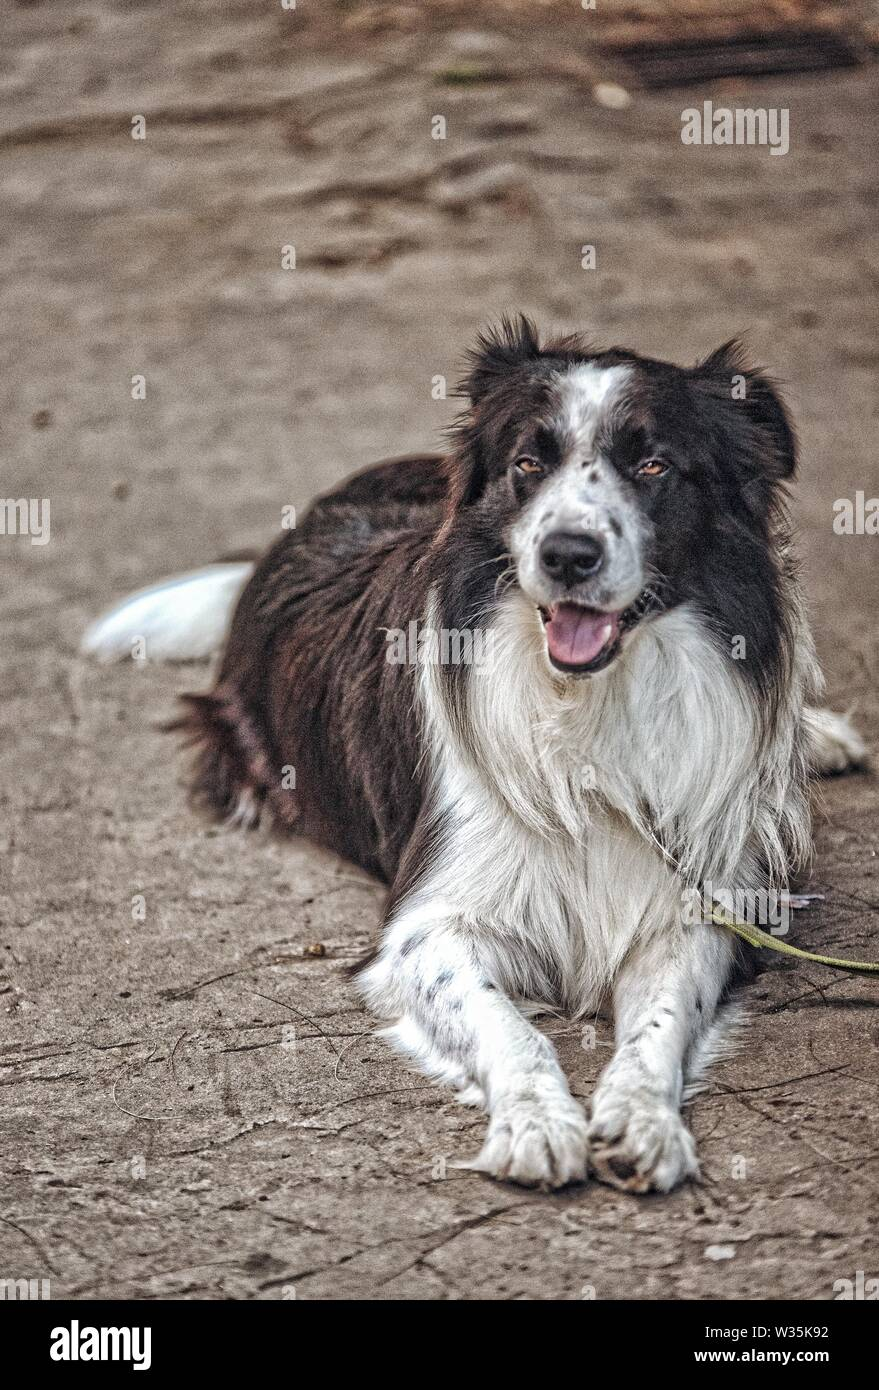 A closeup of a dog laying on the ground at the park - Stock Image